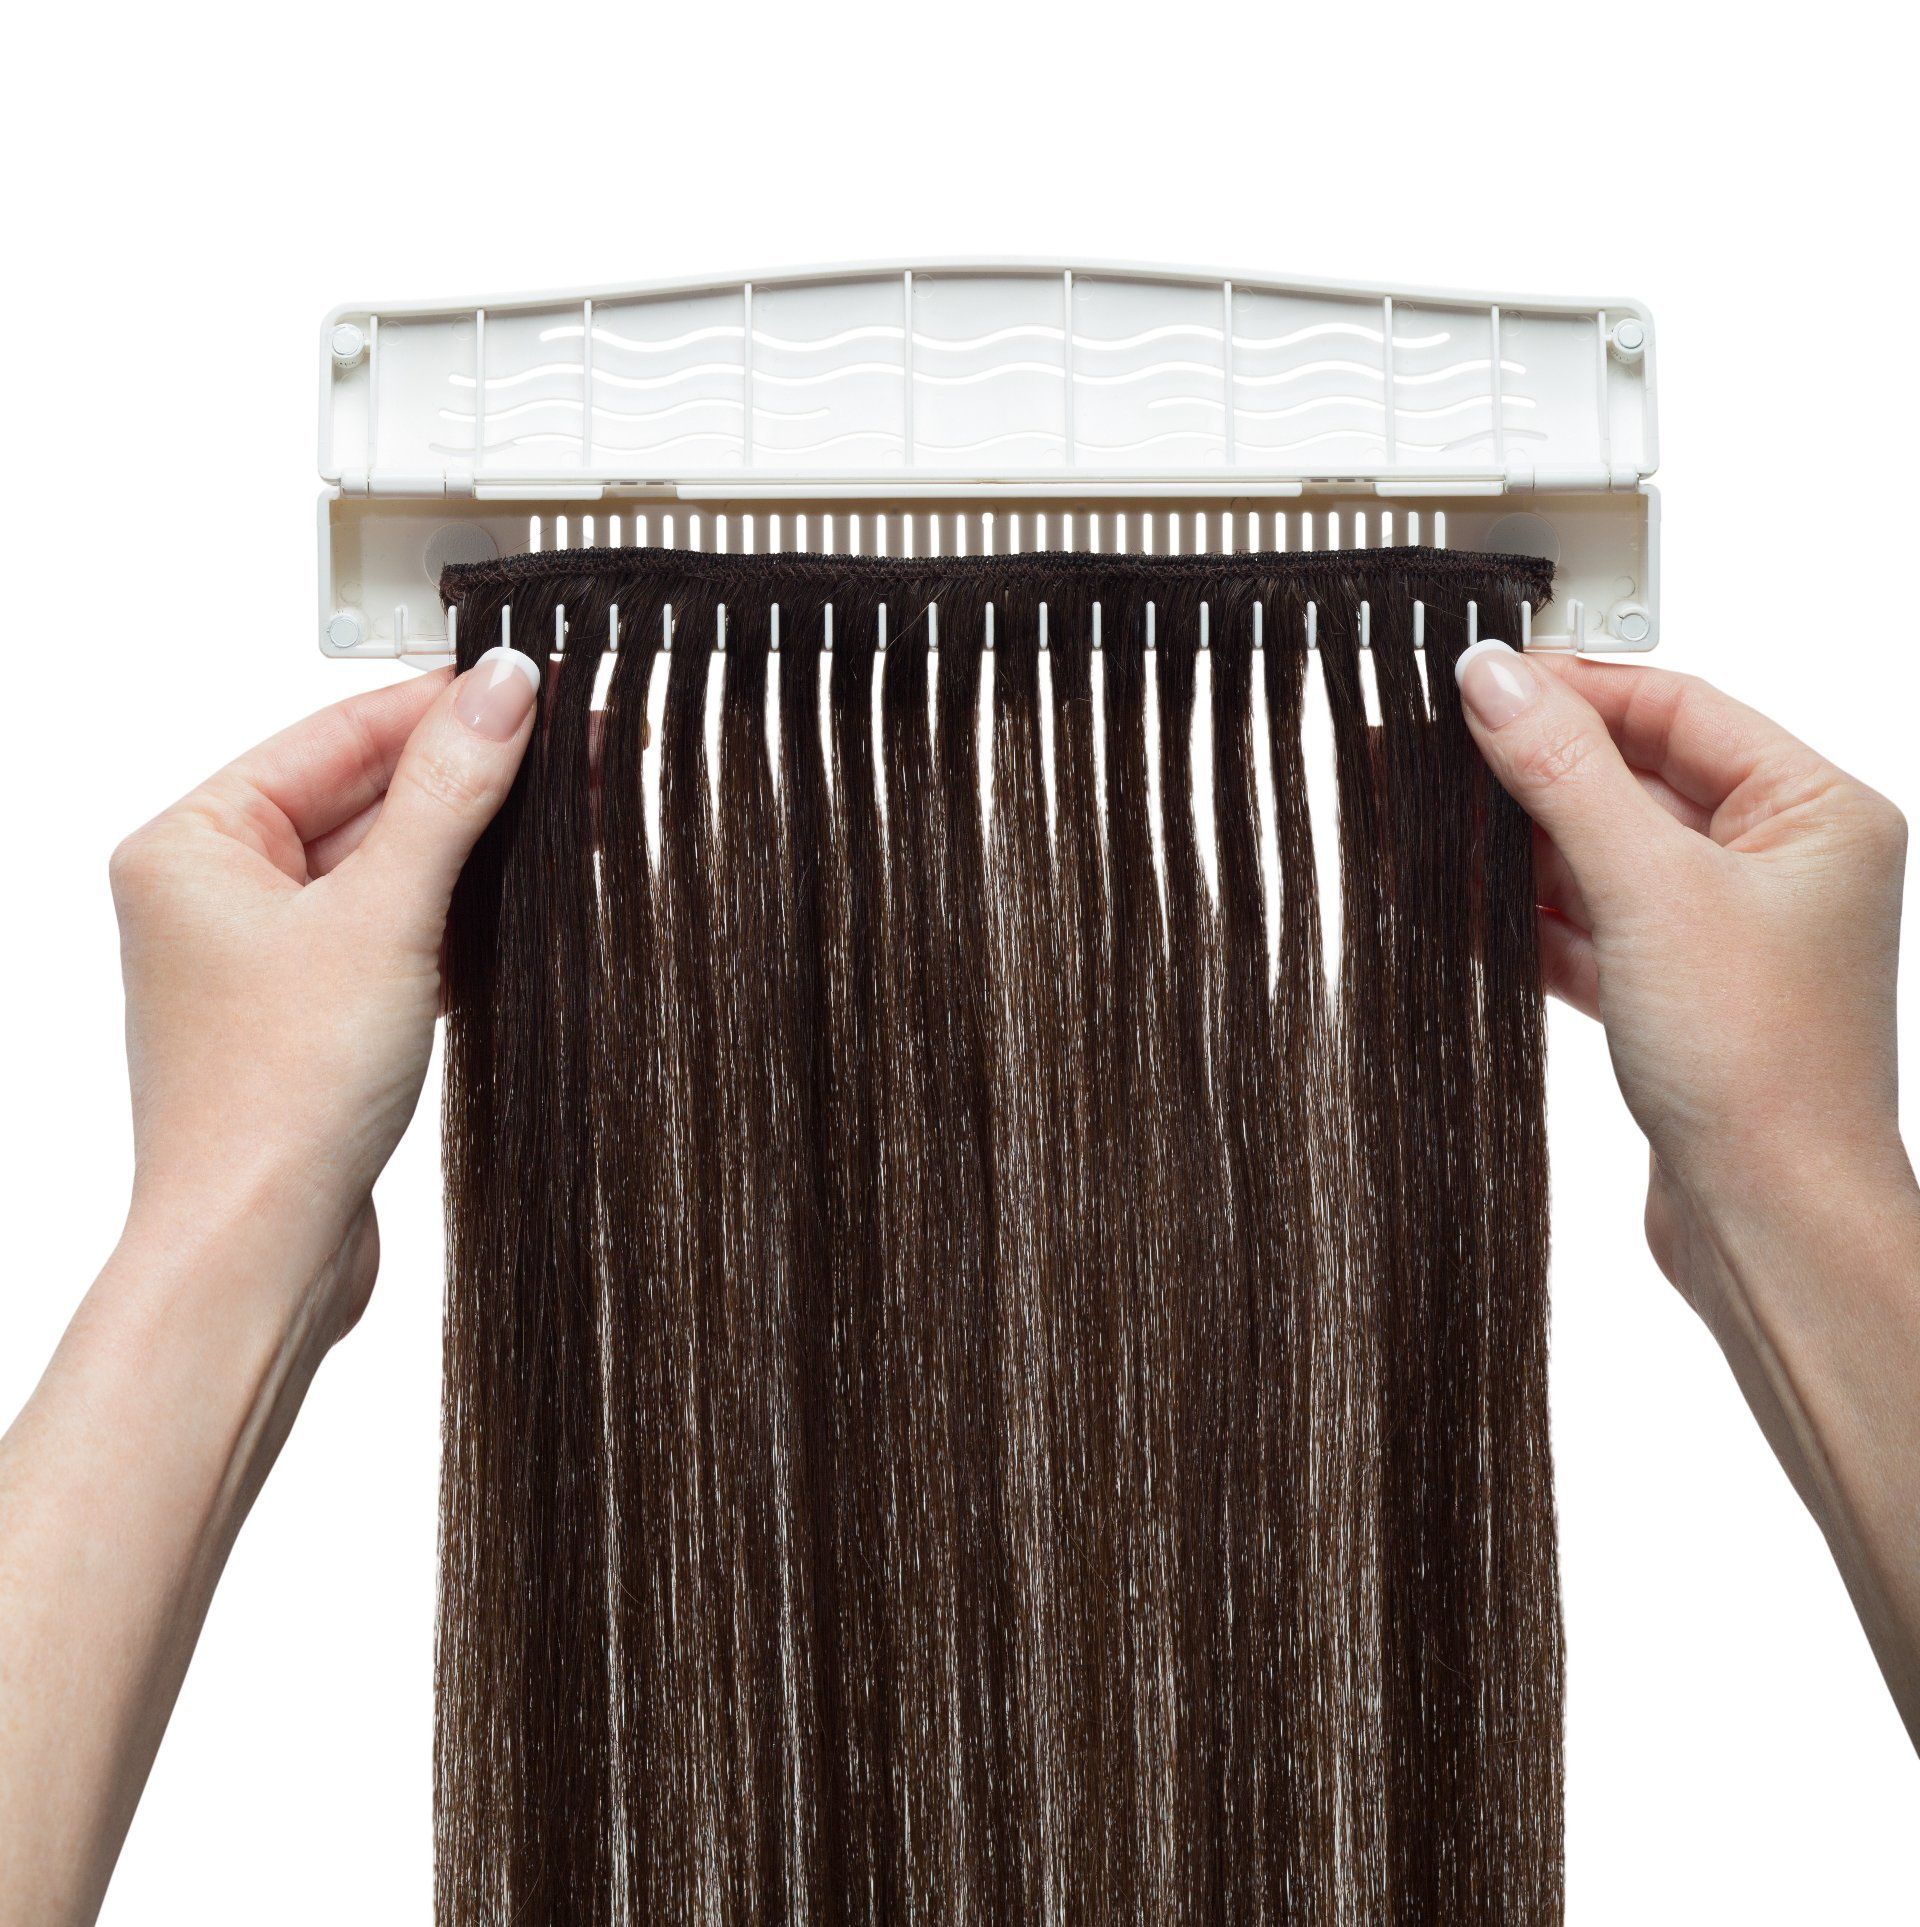 Hair Works 4-in-1 Hair Extension Style Caddy - Lightweight, Waterproof and Portable, This Hair Extension Holder Is Designed To Securely Hold Your Extensions While You Wash, Style, Pack and Store Them by Hair Works (Image #2)